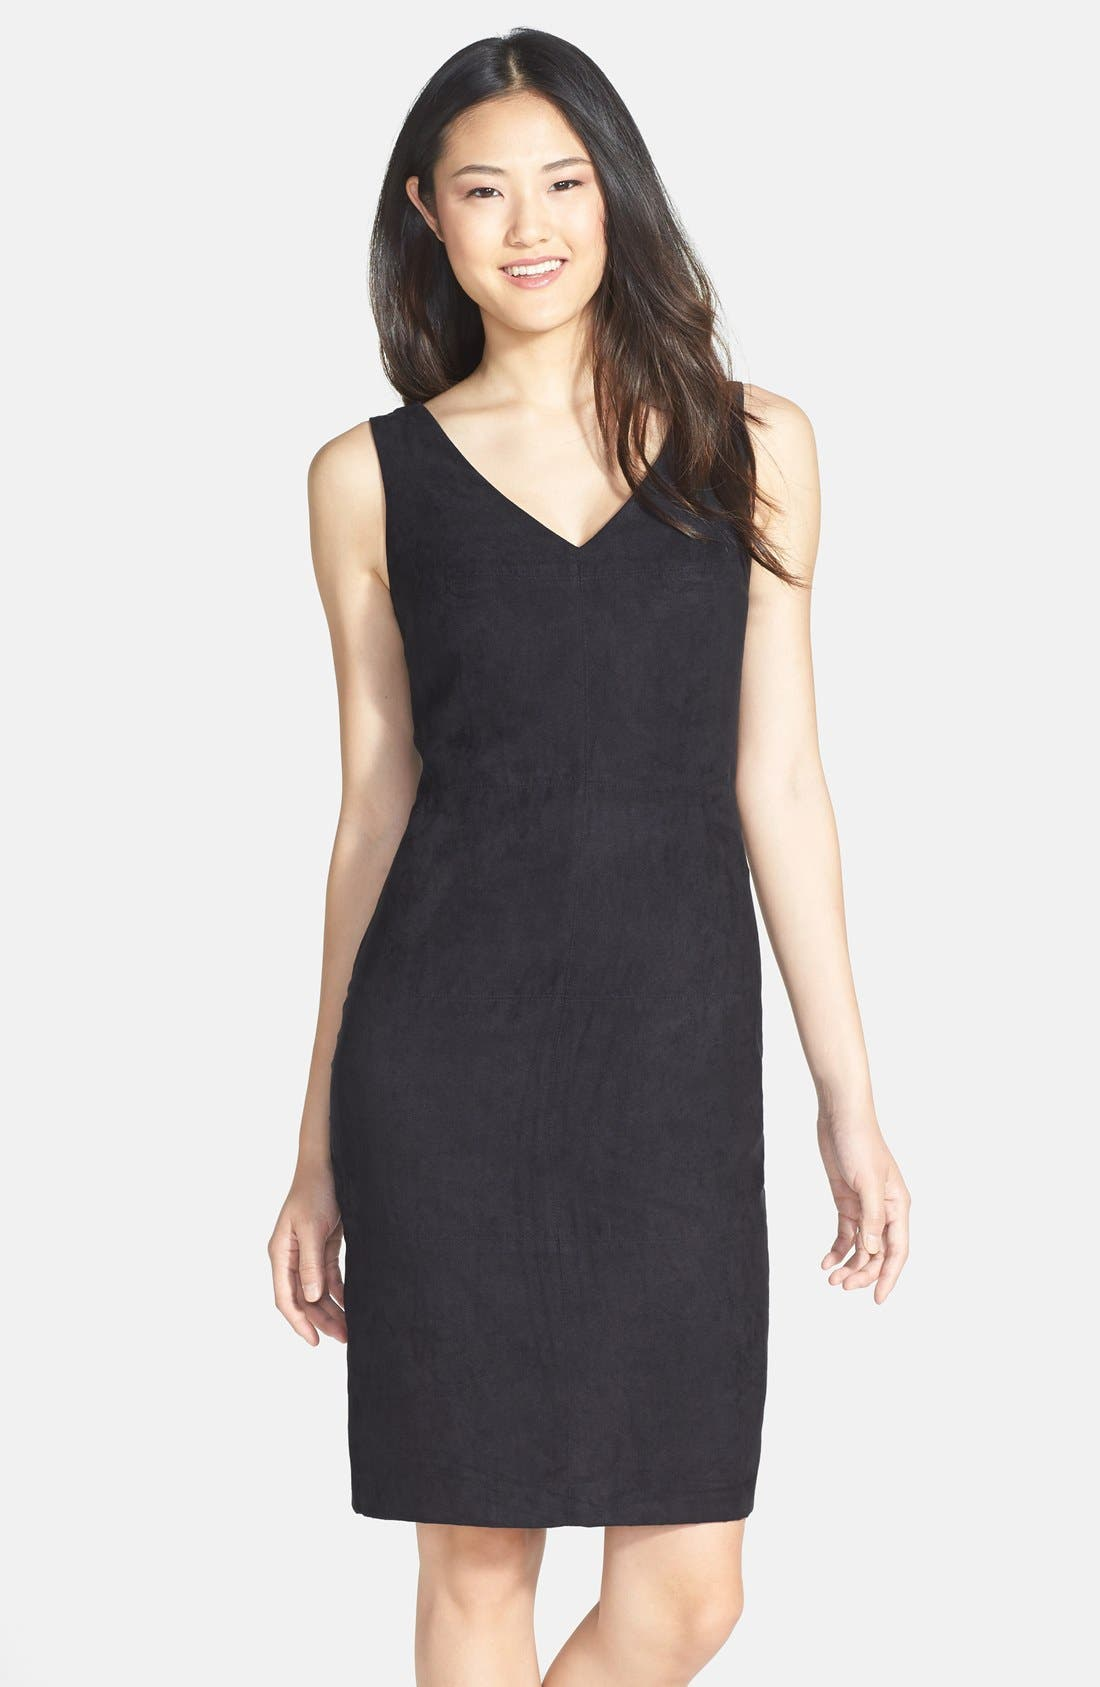 Alternate Image 1 Selected - Vince Camuto Faux Suede Front Sheath Dress (Regular & Petite)